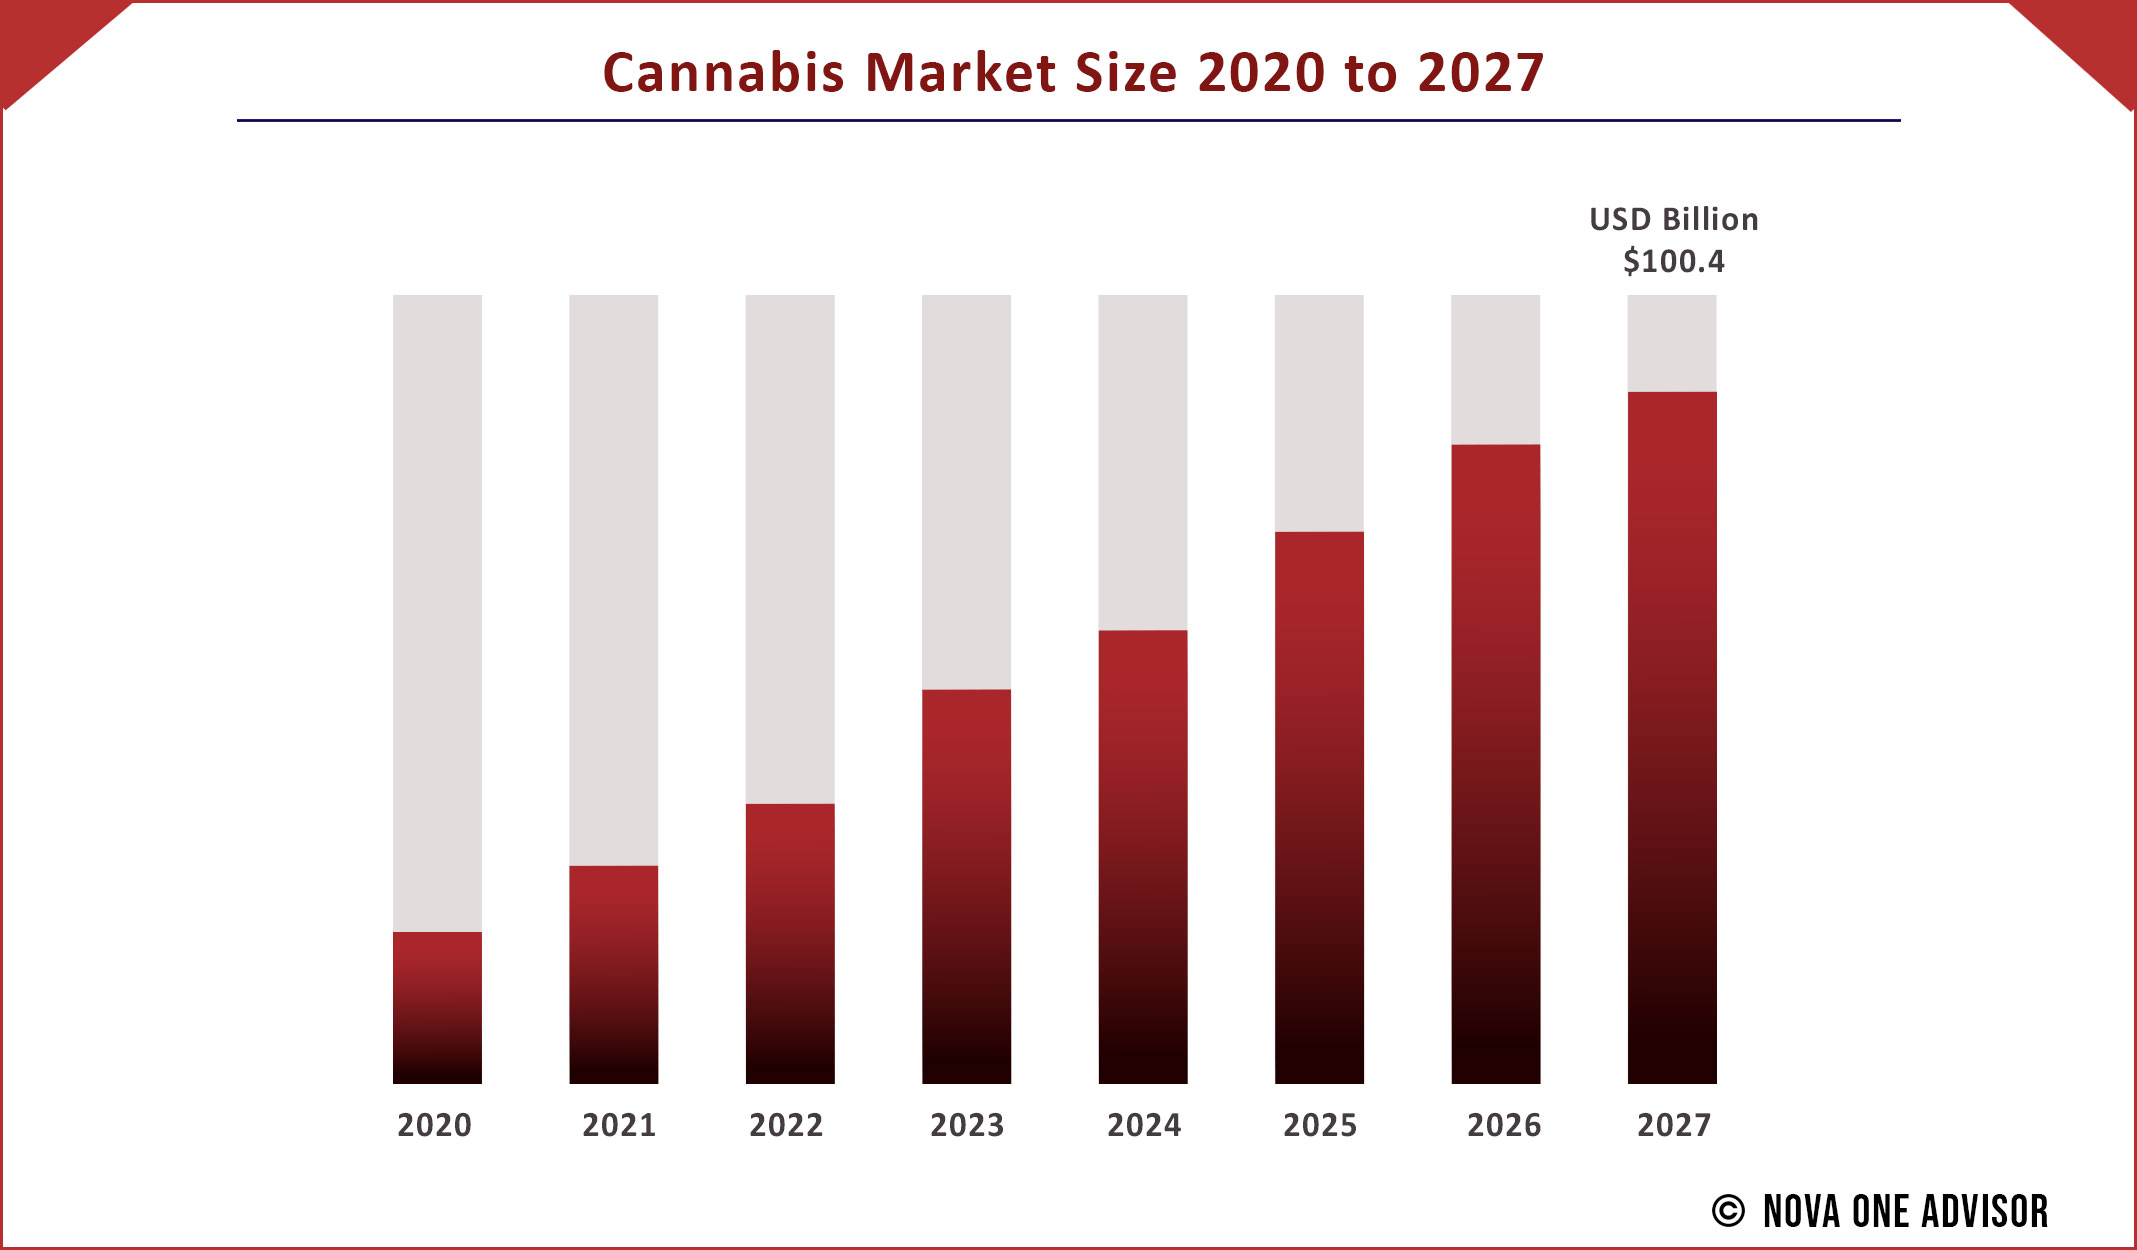 Cannabis Market Size 2020 to 2027